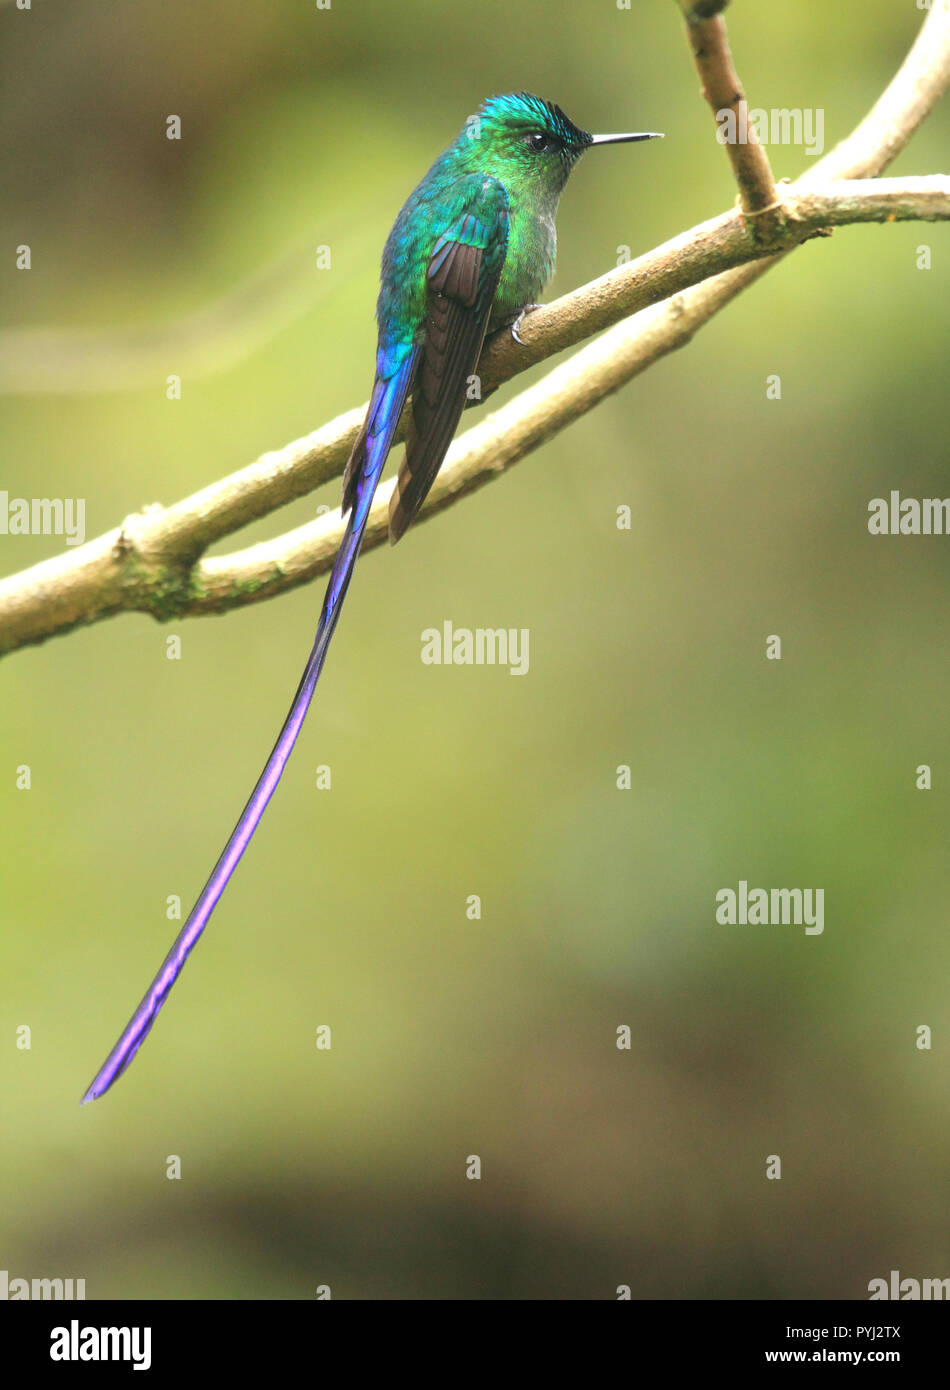 Gorgeous long tailed sylph male hummingbird  perched in its natural habitat the tropical rainforest. - Stock Image